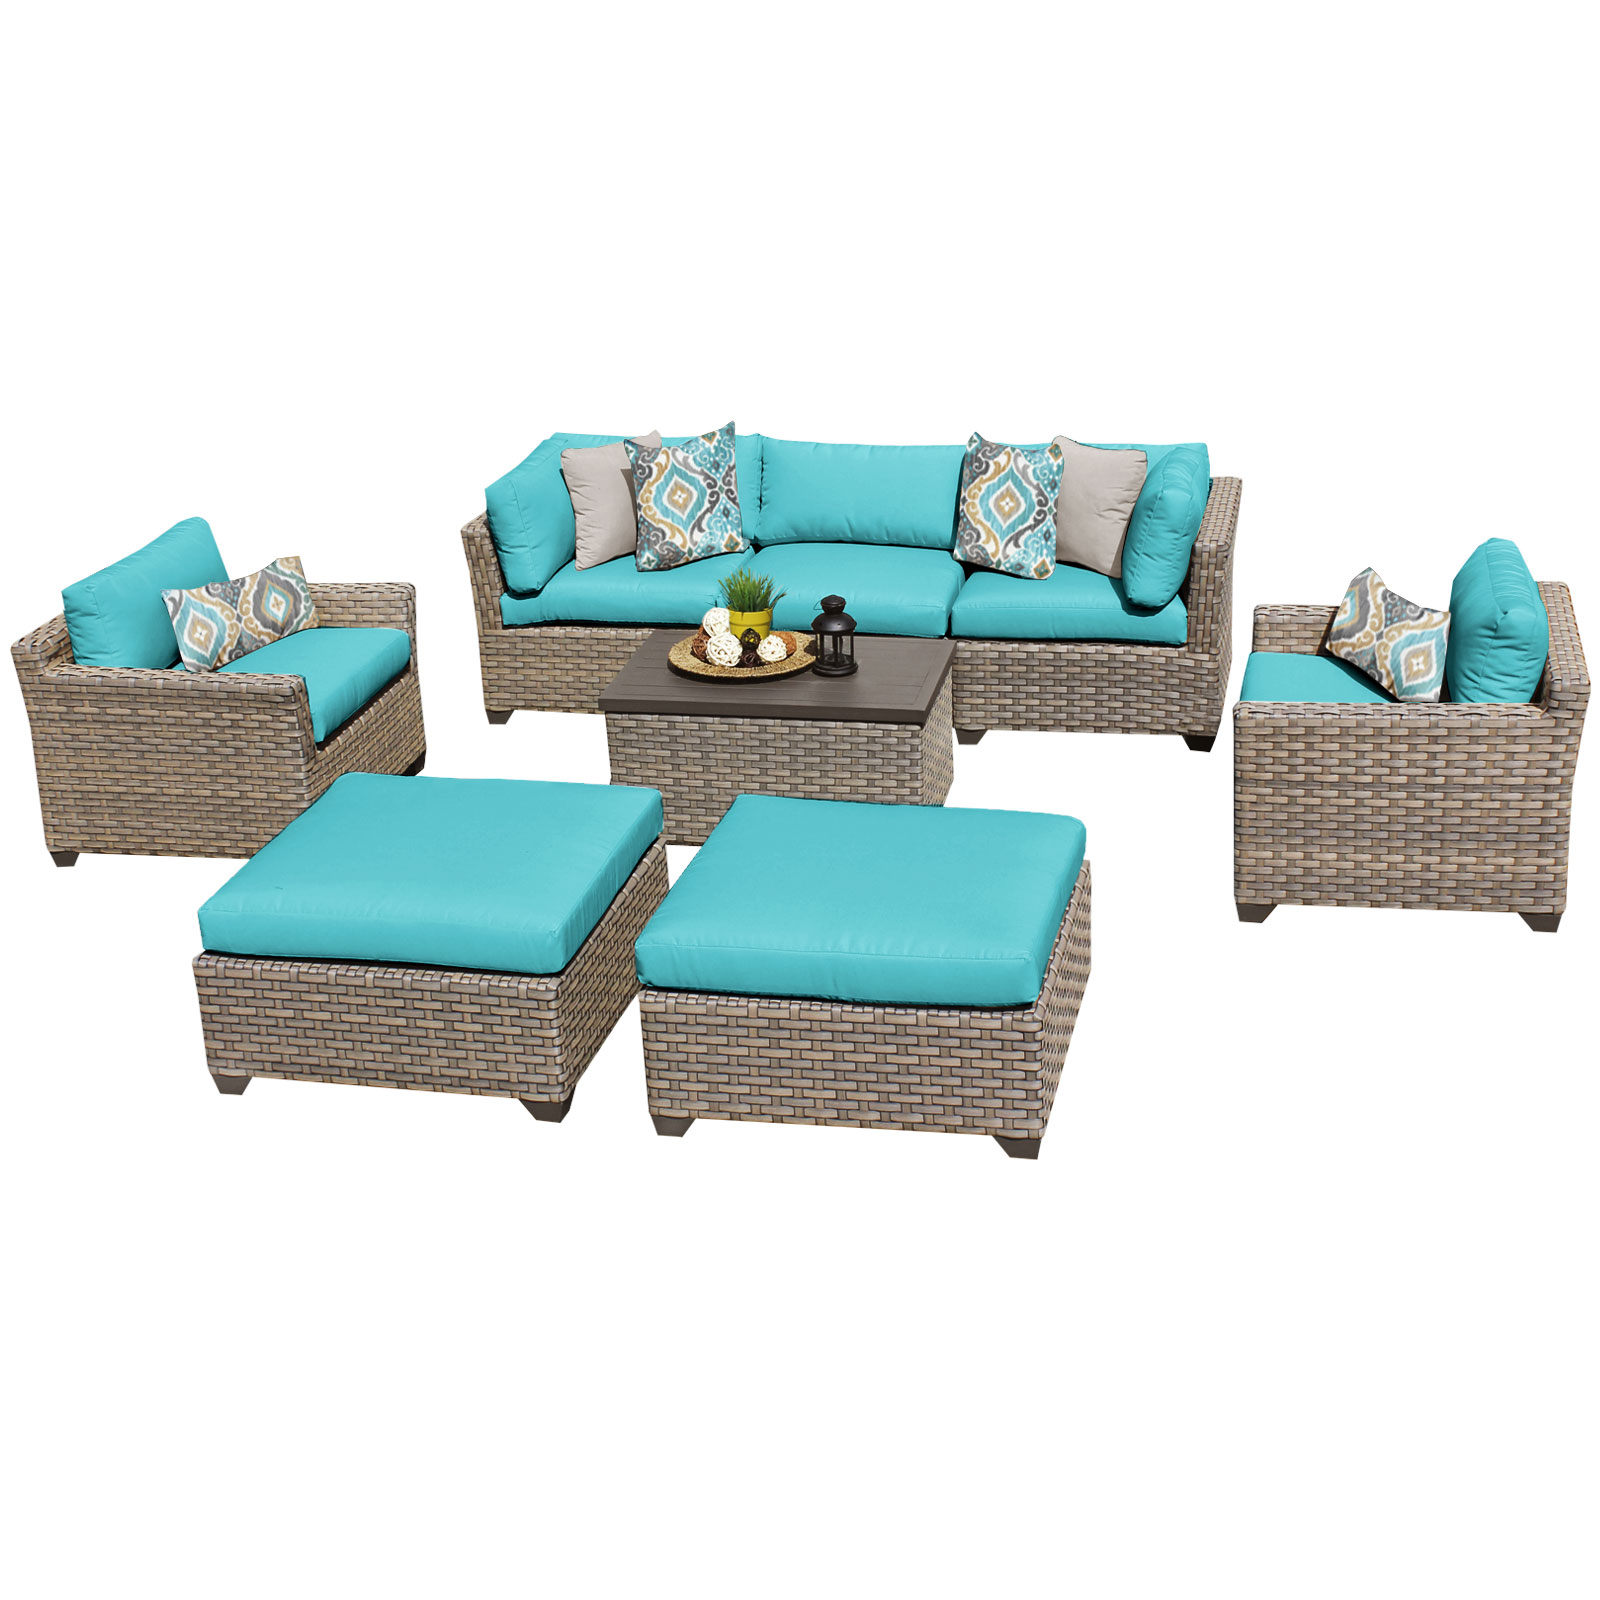 Hampton 8 Piece Outdoor Wicker Patio Furniture Set 08a